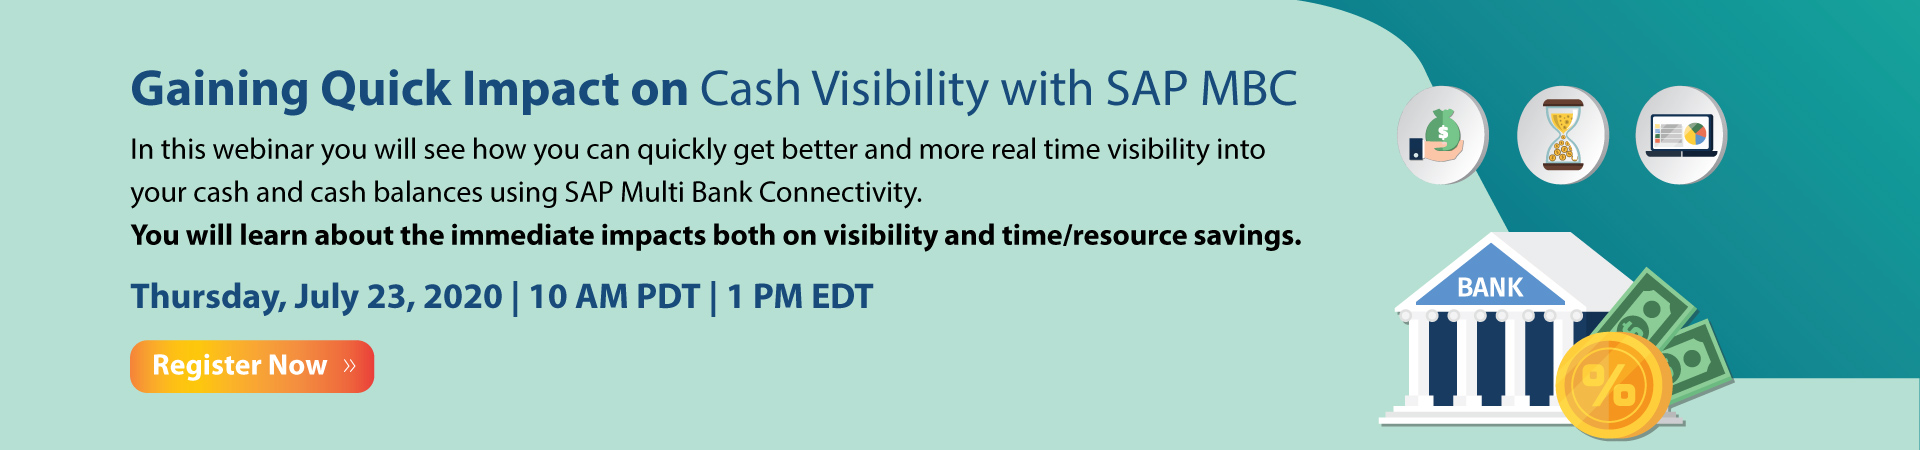 Gaining Quick Impact on Cash Visibility with SAP MBC Banner